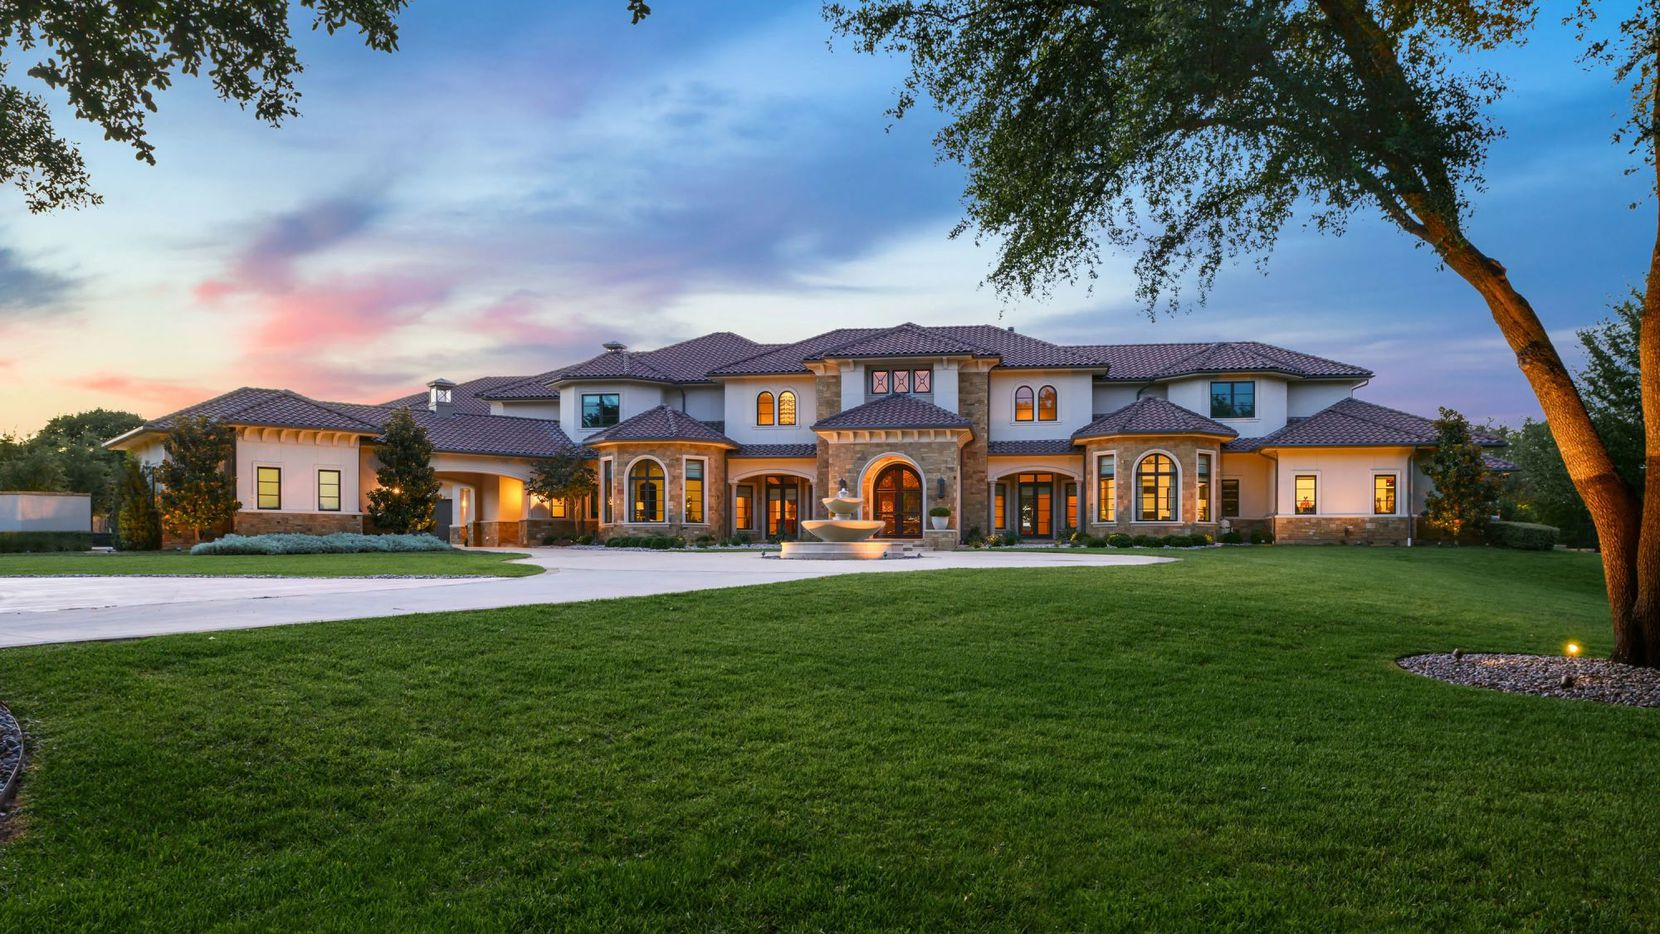 Price-drop alert: Jermaine O'Neal's Southlake estate is now listed for $9.99 million by Marilyn Hoffman of Hoffman International Properties Inc.